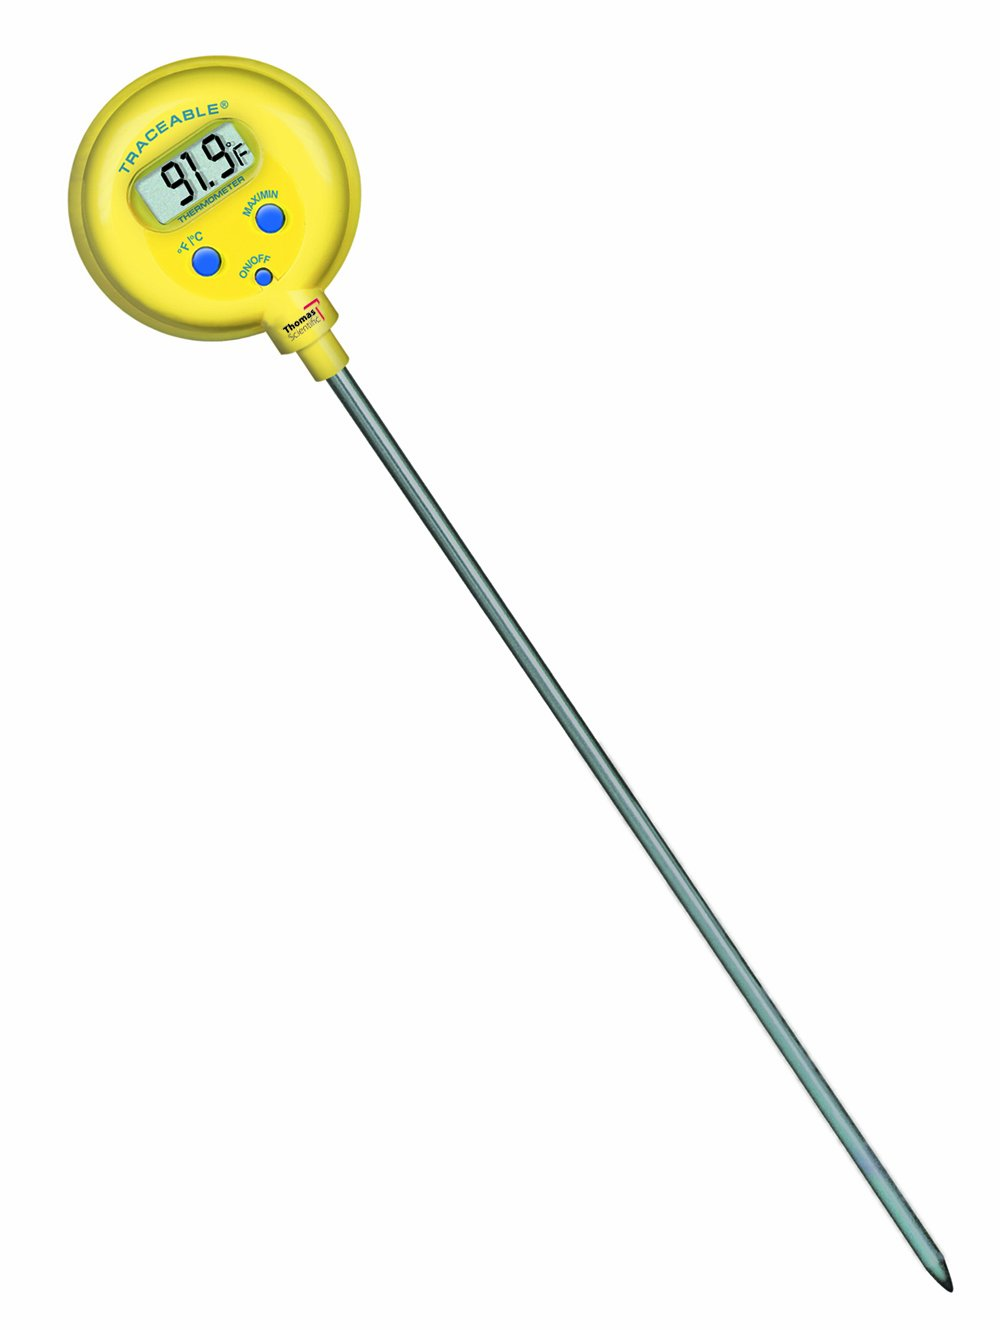 Thomas Traceable Ultra Lollipop Shockproof/Waterproof Thermometer, 8'' Stem, -58 to 572 degree F